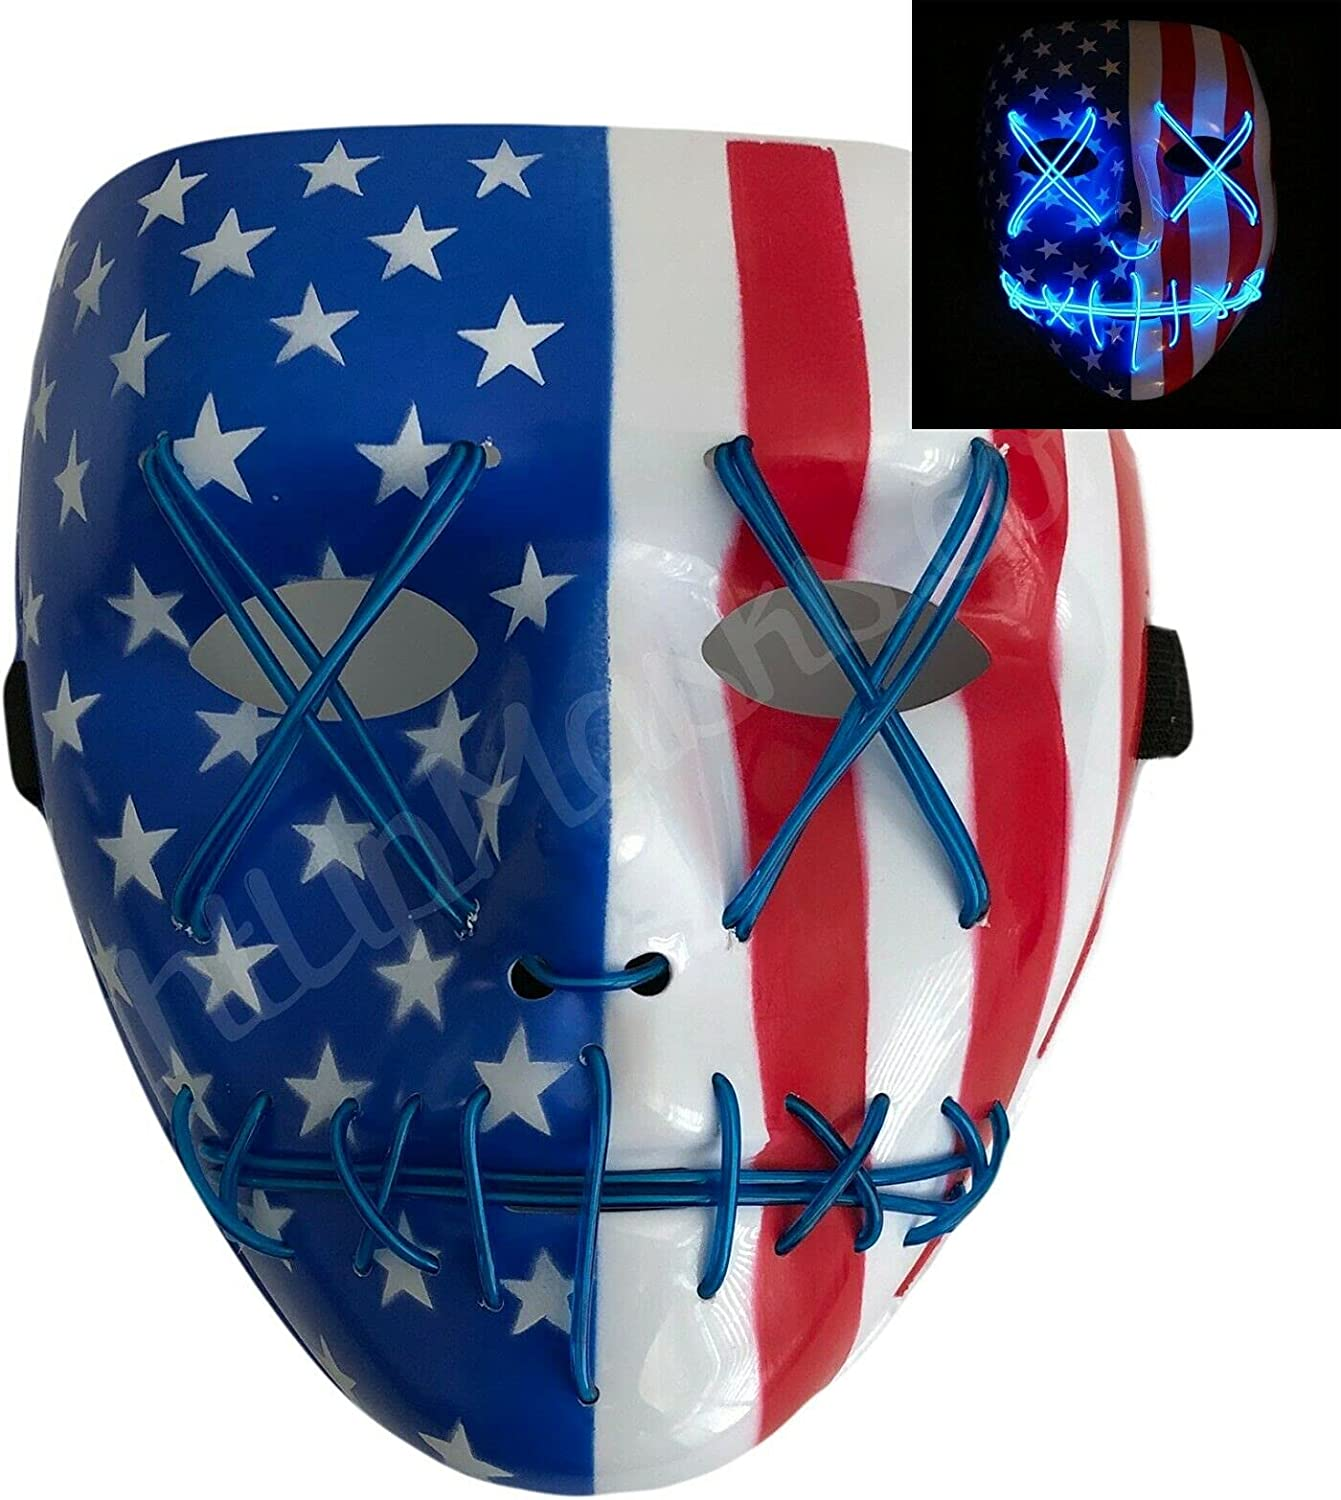 Blue Halloween Popular brand in the world Light Large special price Up Mask American Stitched Fe Flag LED Purge